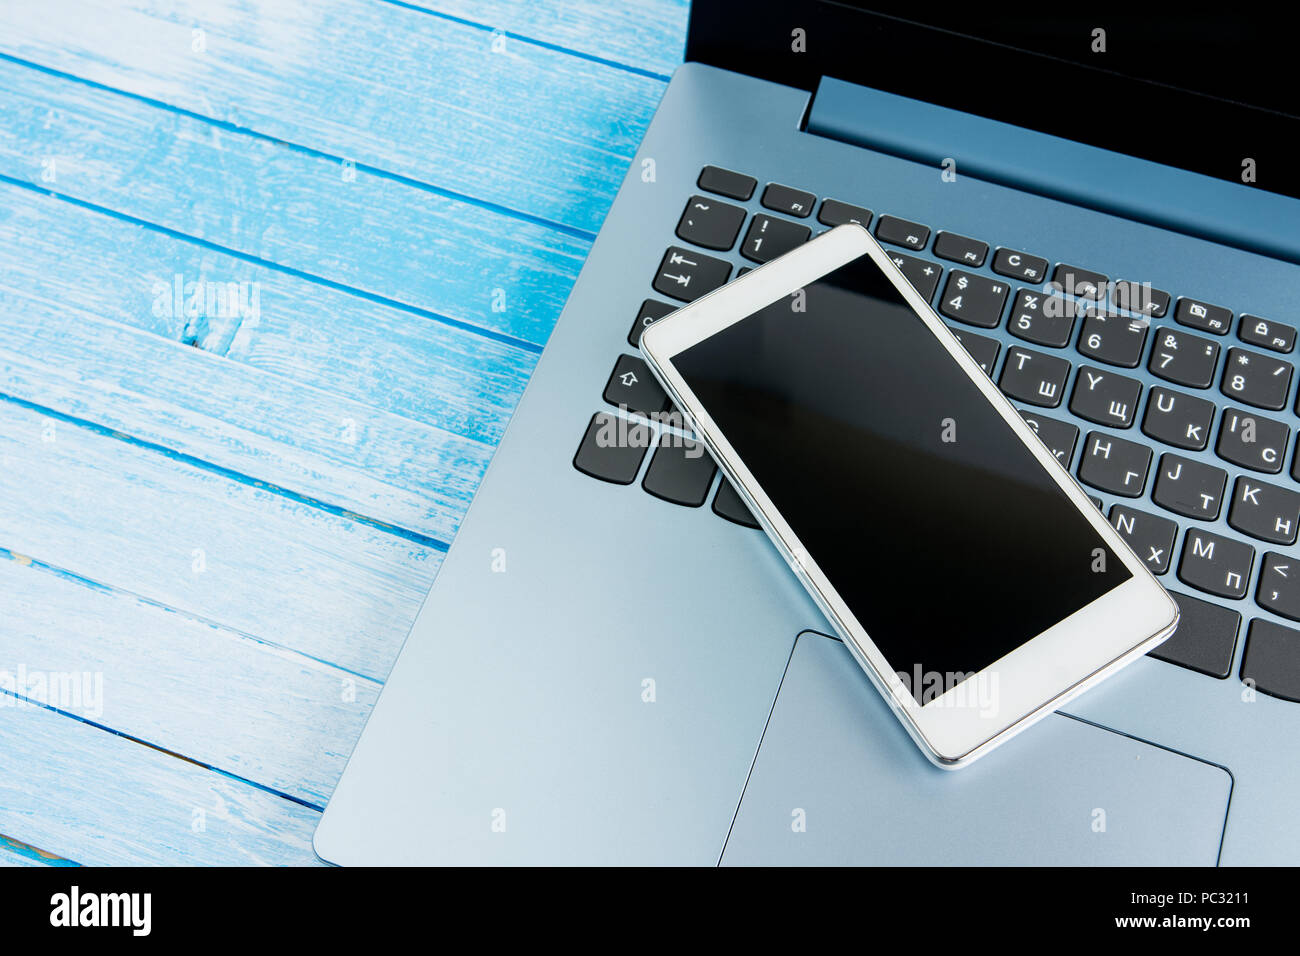 Gradient Blue Brand New Laptop With Balck Keyboard Closeup With  White Empty Screen Smartphone On Blue Wood Surface Studio Shot - Stock Image